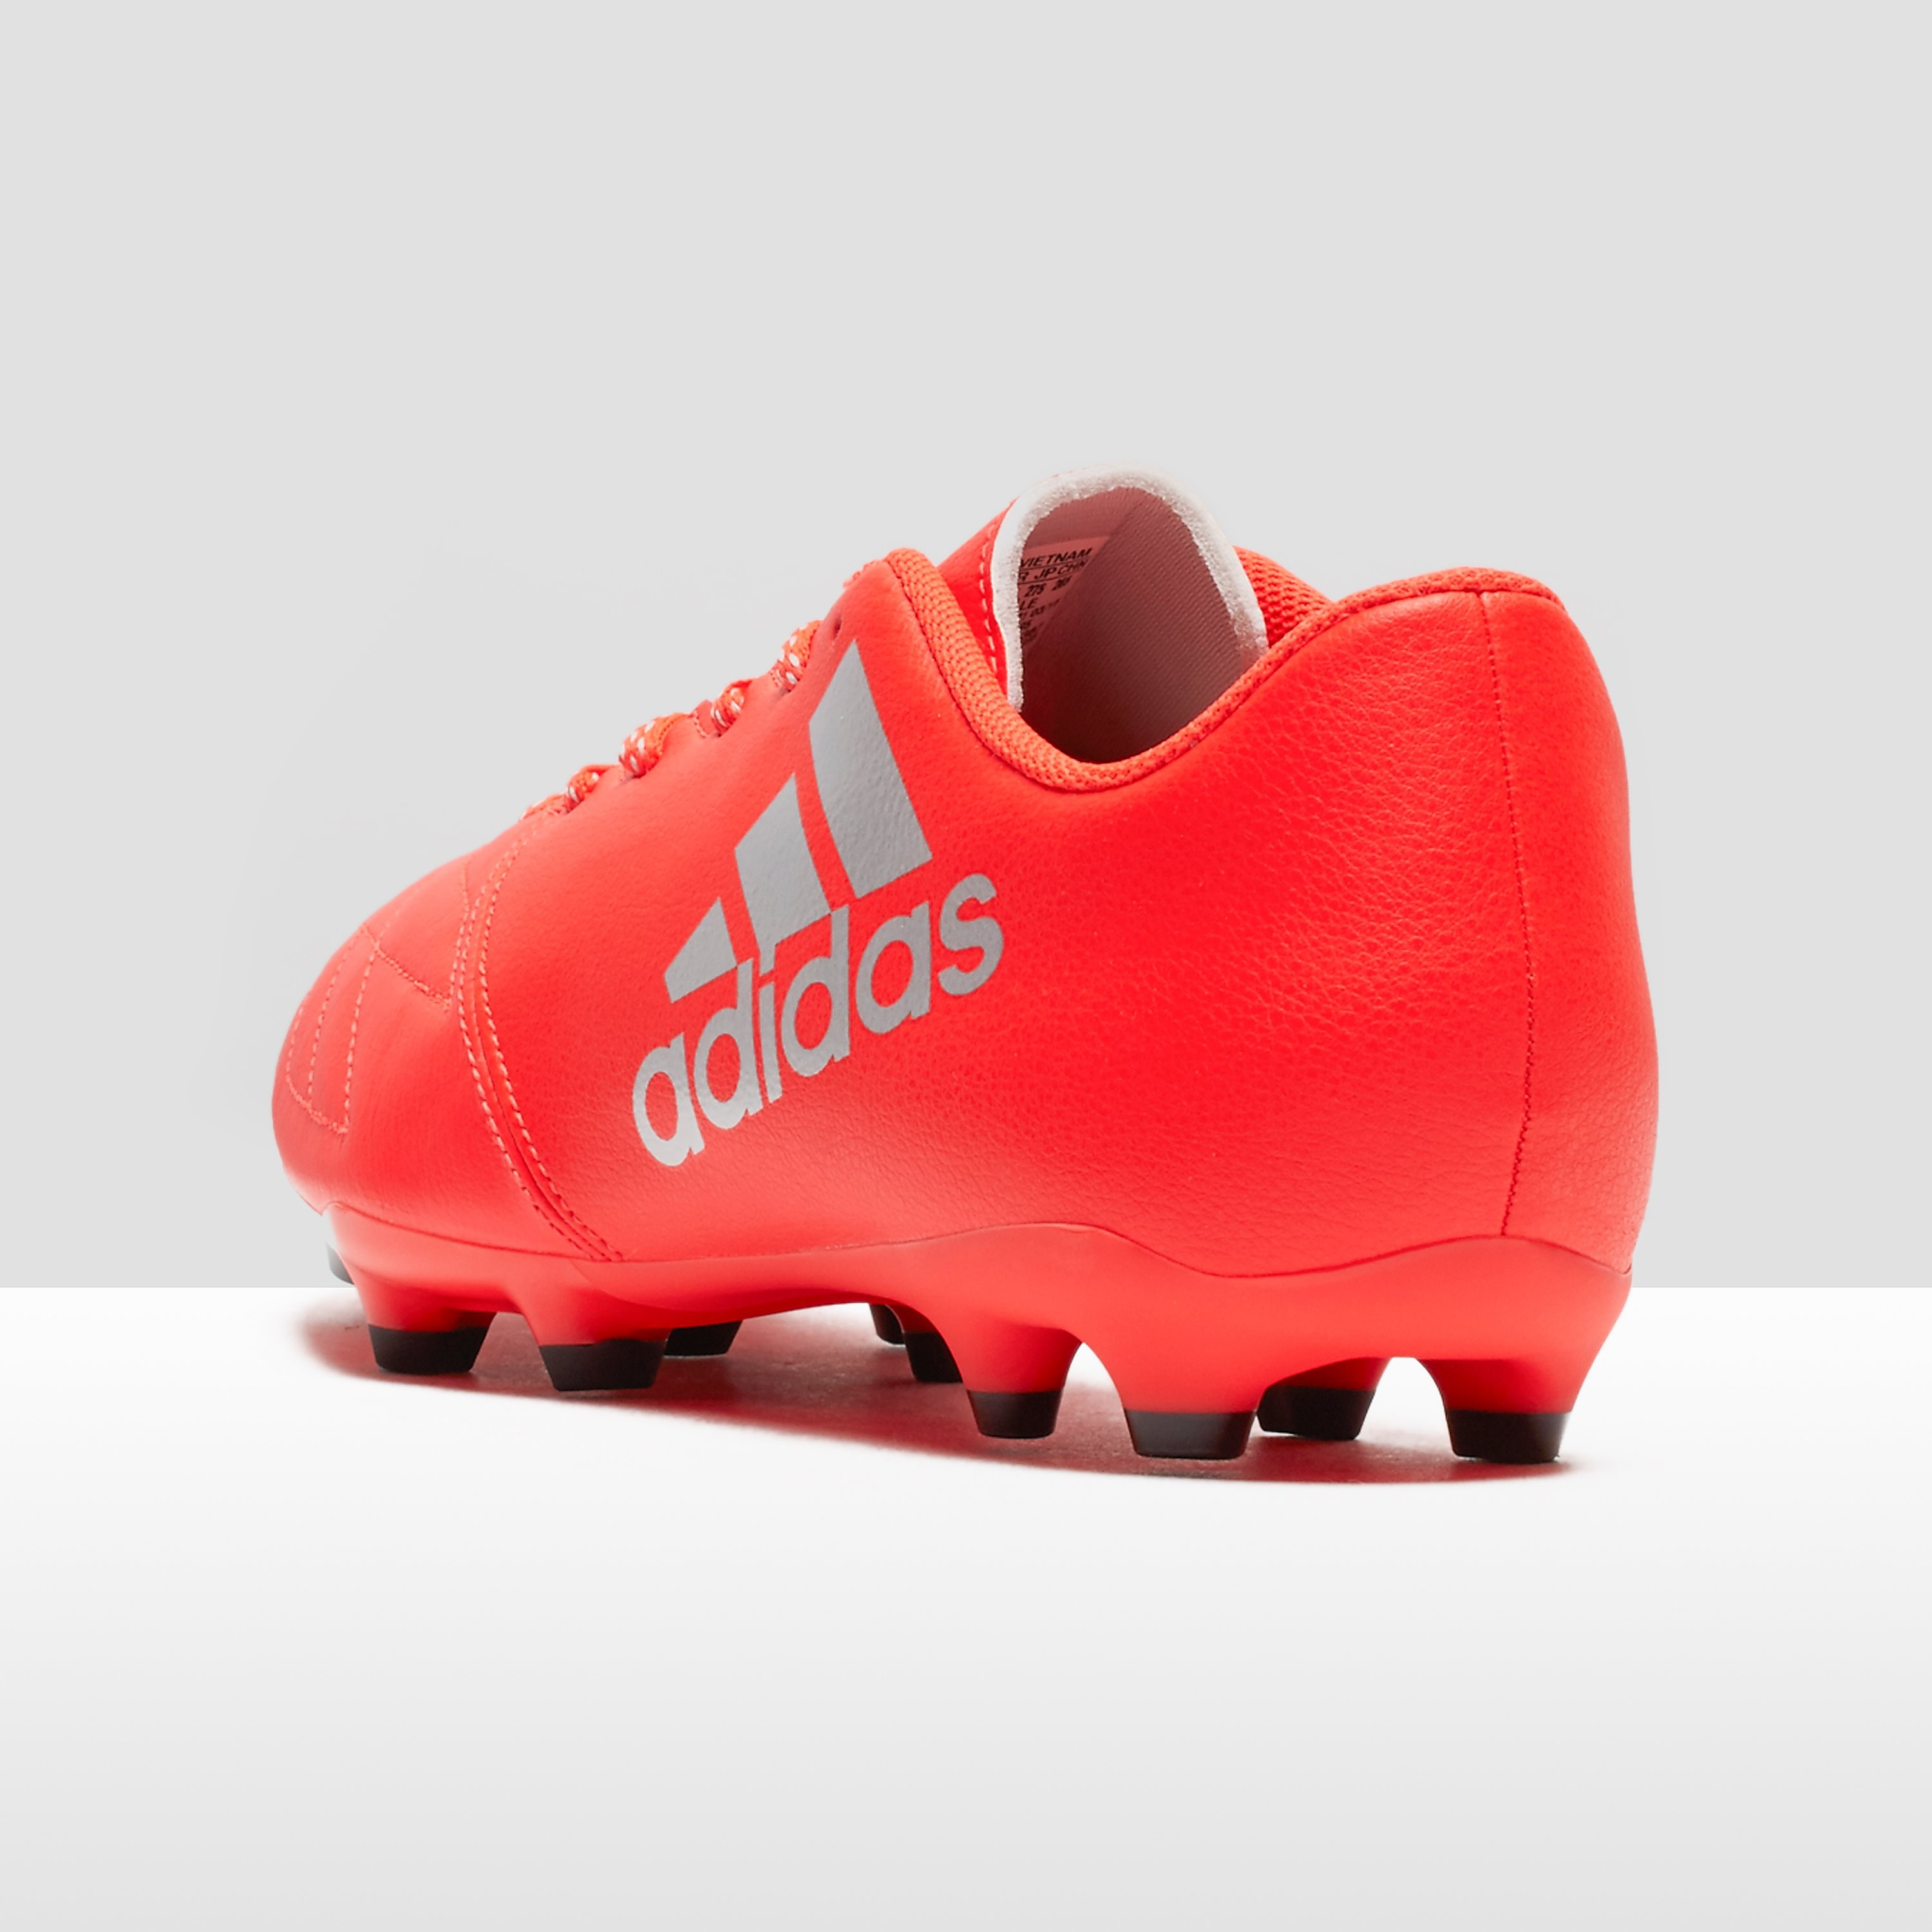 adidas  Men's X 16.3 Firm Ground Leather Football Boots